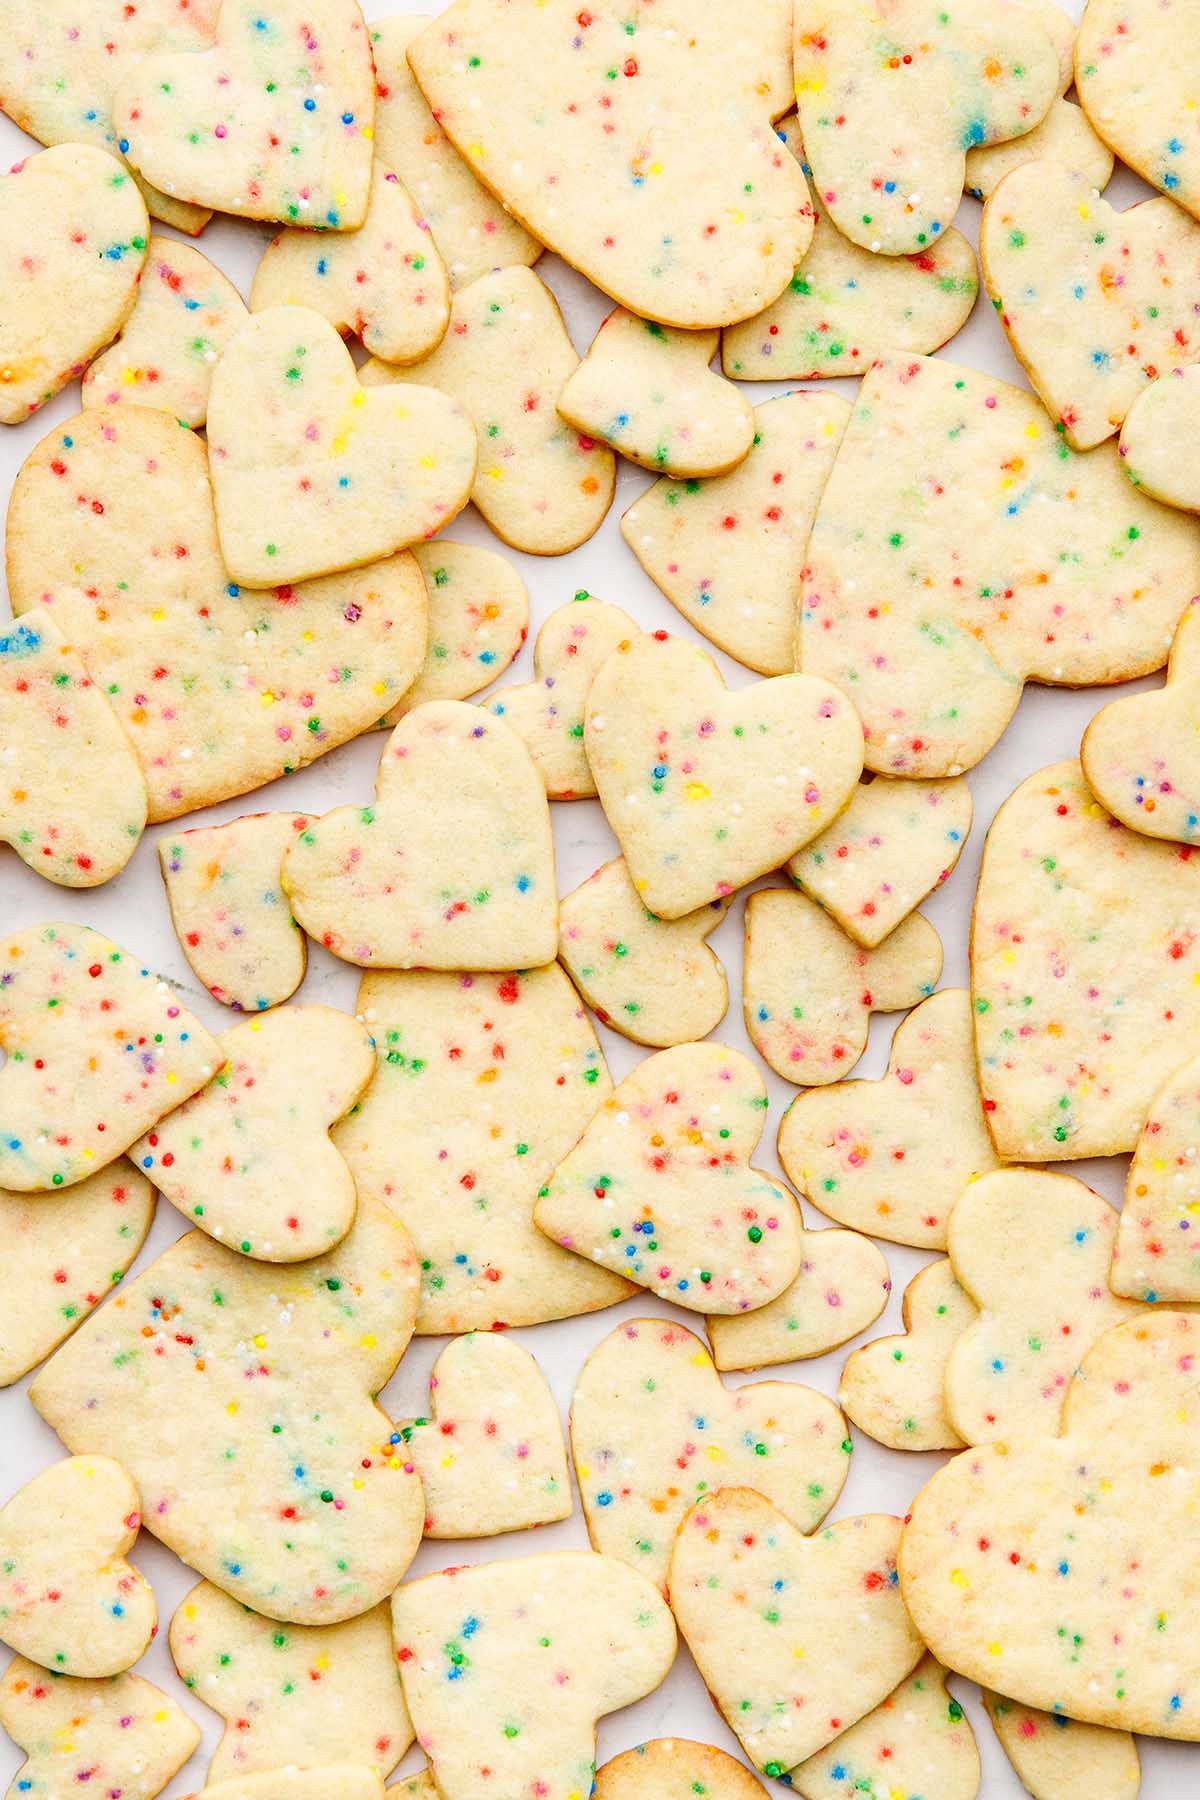 Heart-shaped sugar cookies with sprinkles scattered together over a marble surface.